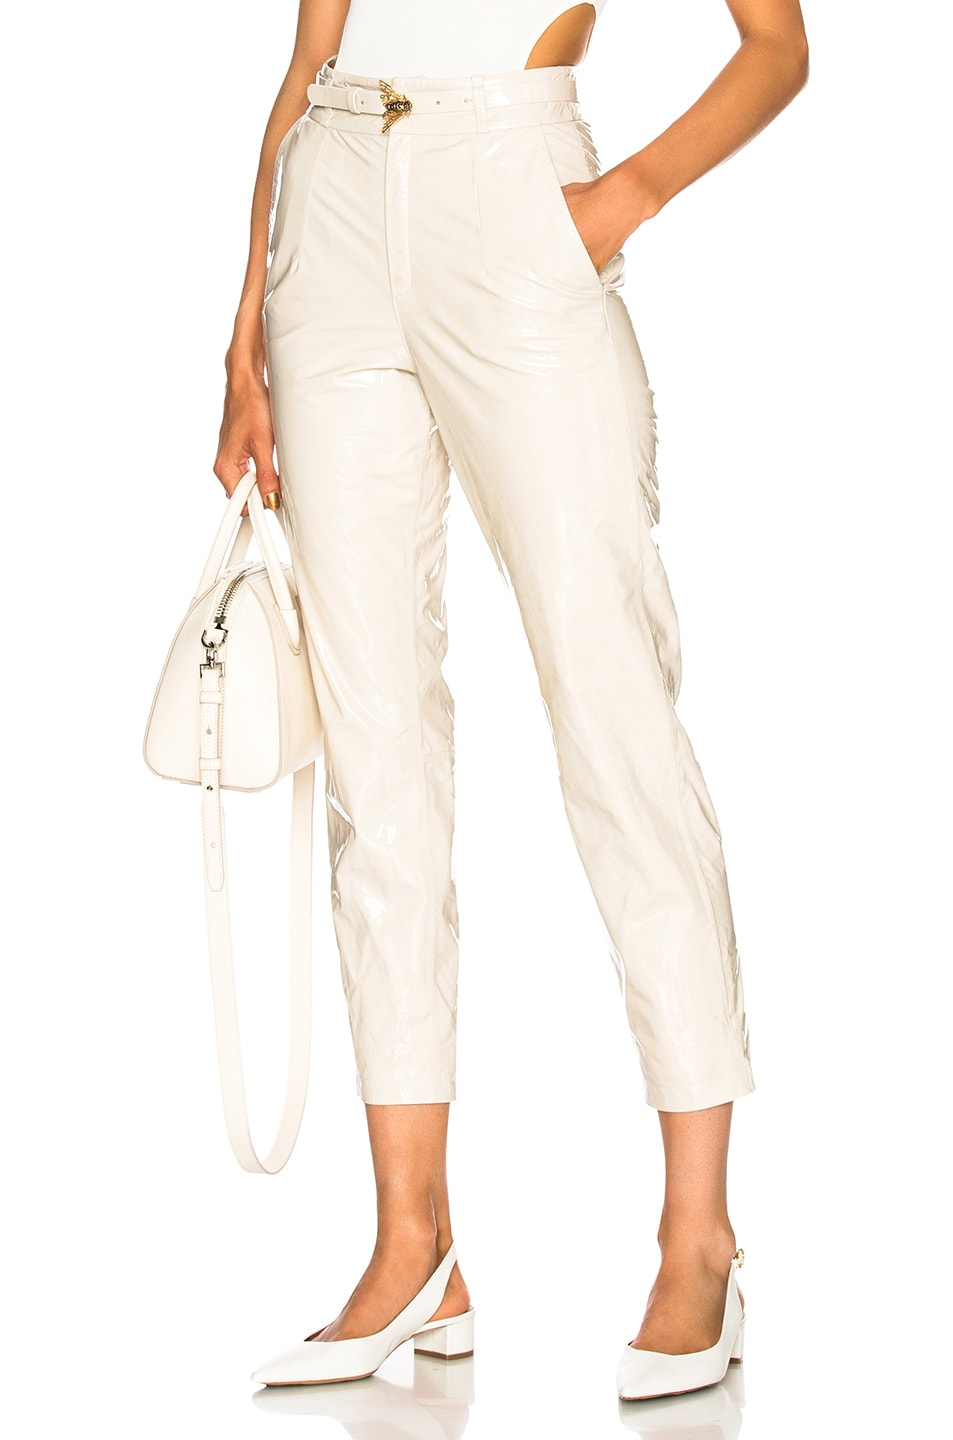 ZEYNEP ARCAY BELTED PATENT LEATHER PANTS IN WHITE